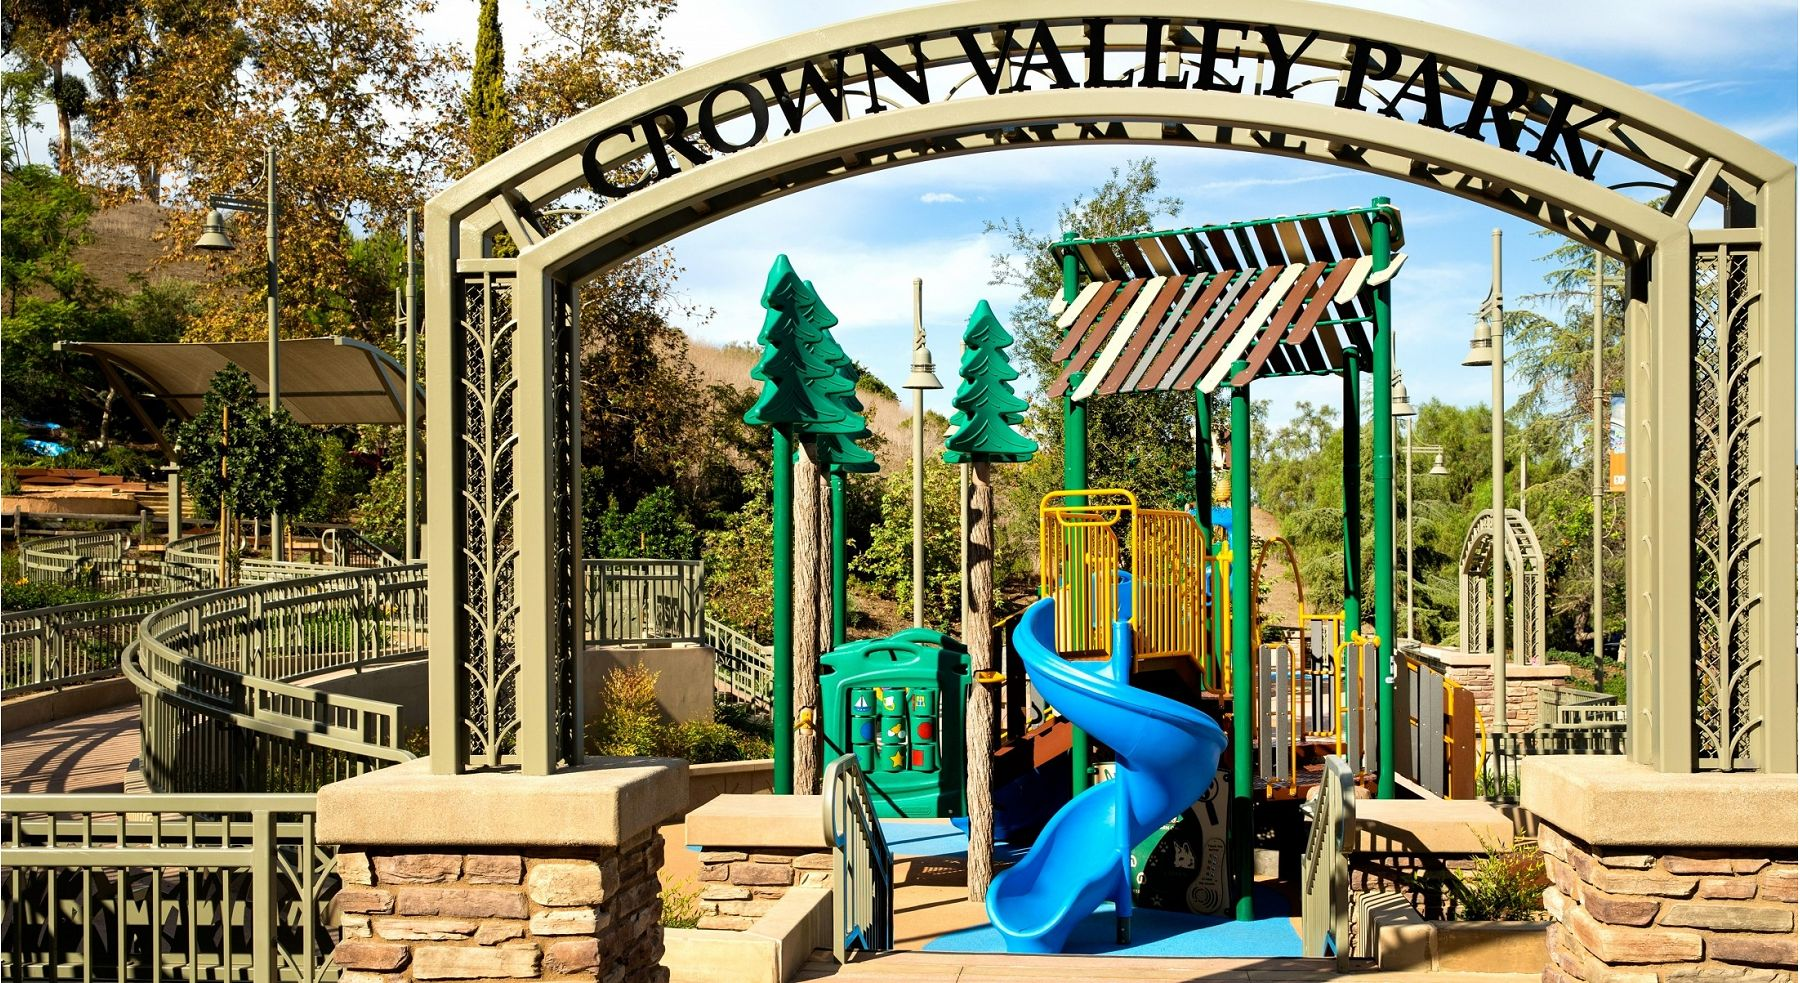 Crown Valley Park